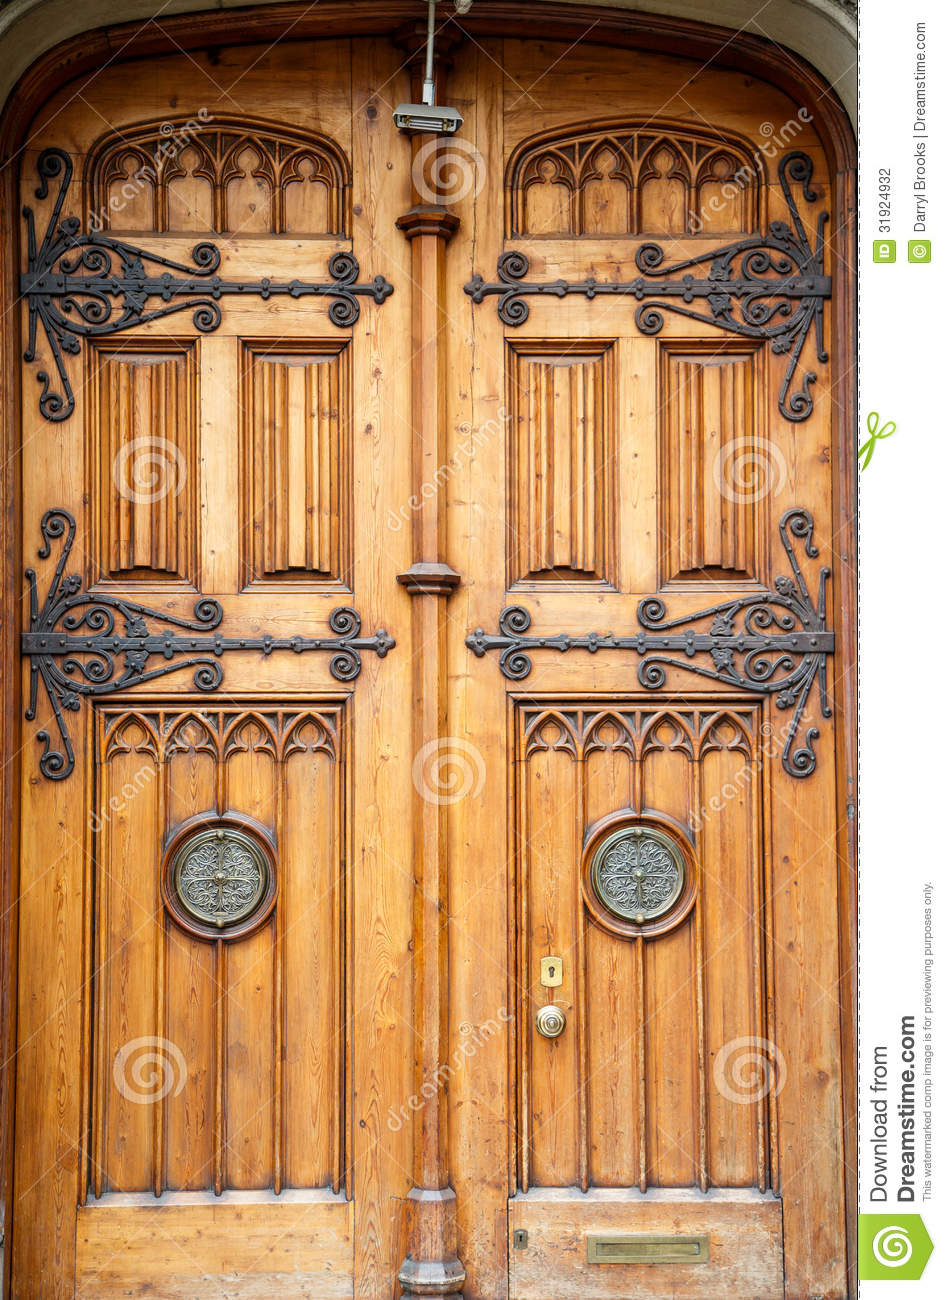 Old Wooden Doors With Brass Fixtures Stock Photography